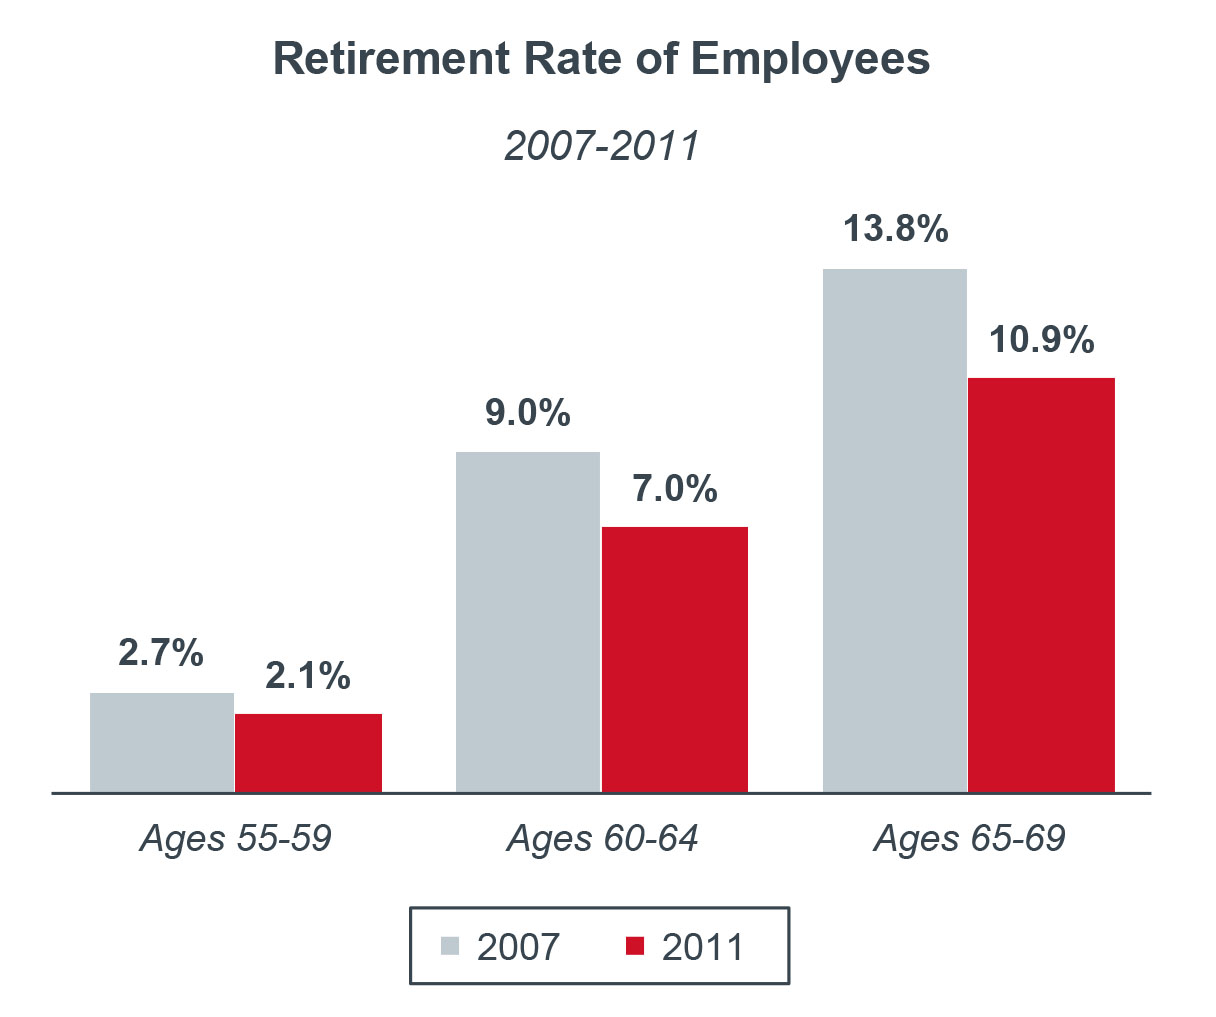 retirement rate of employees